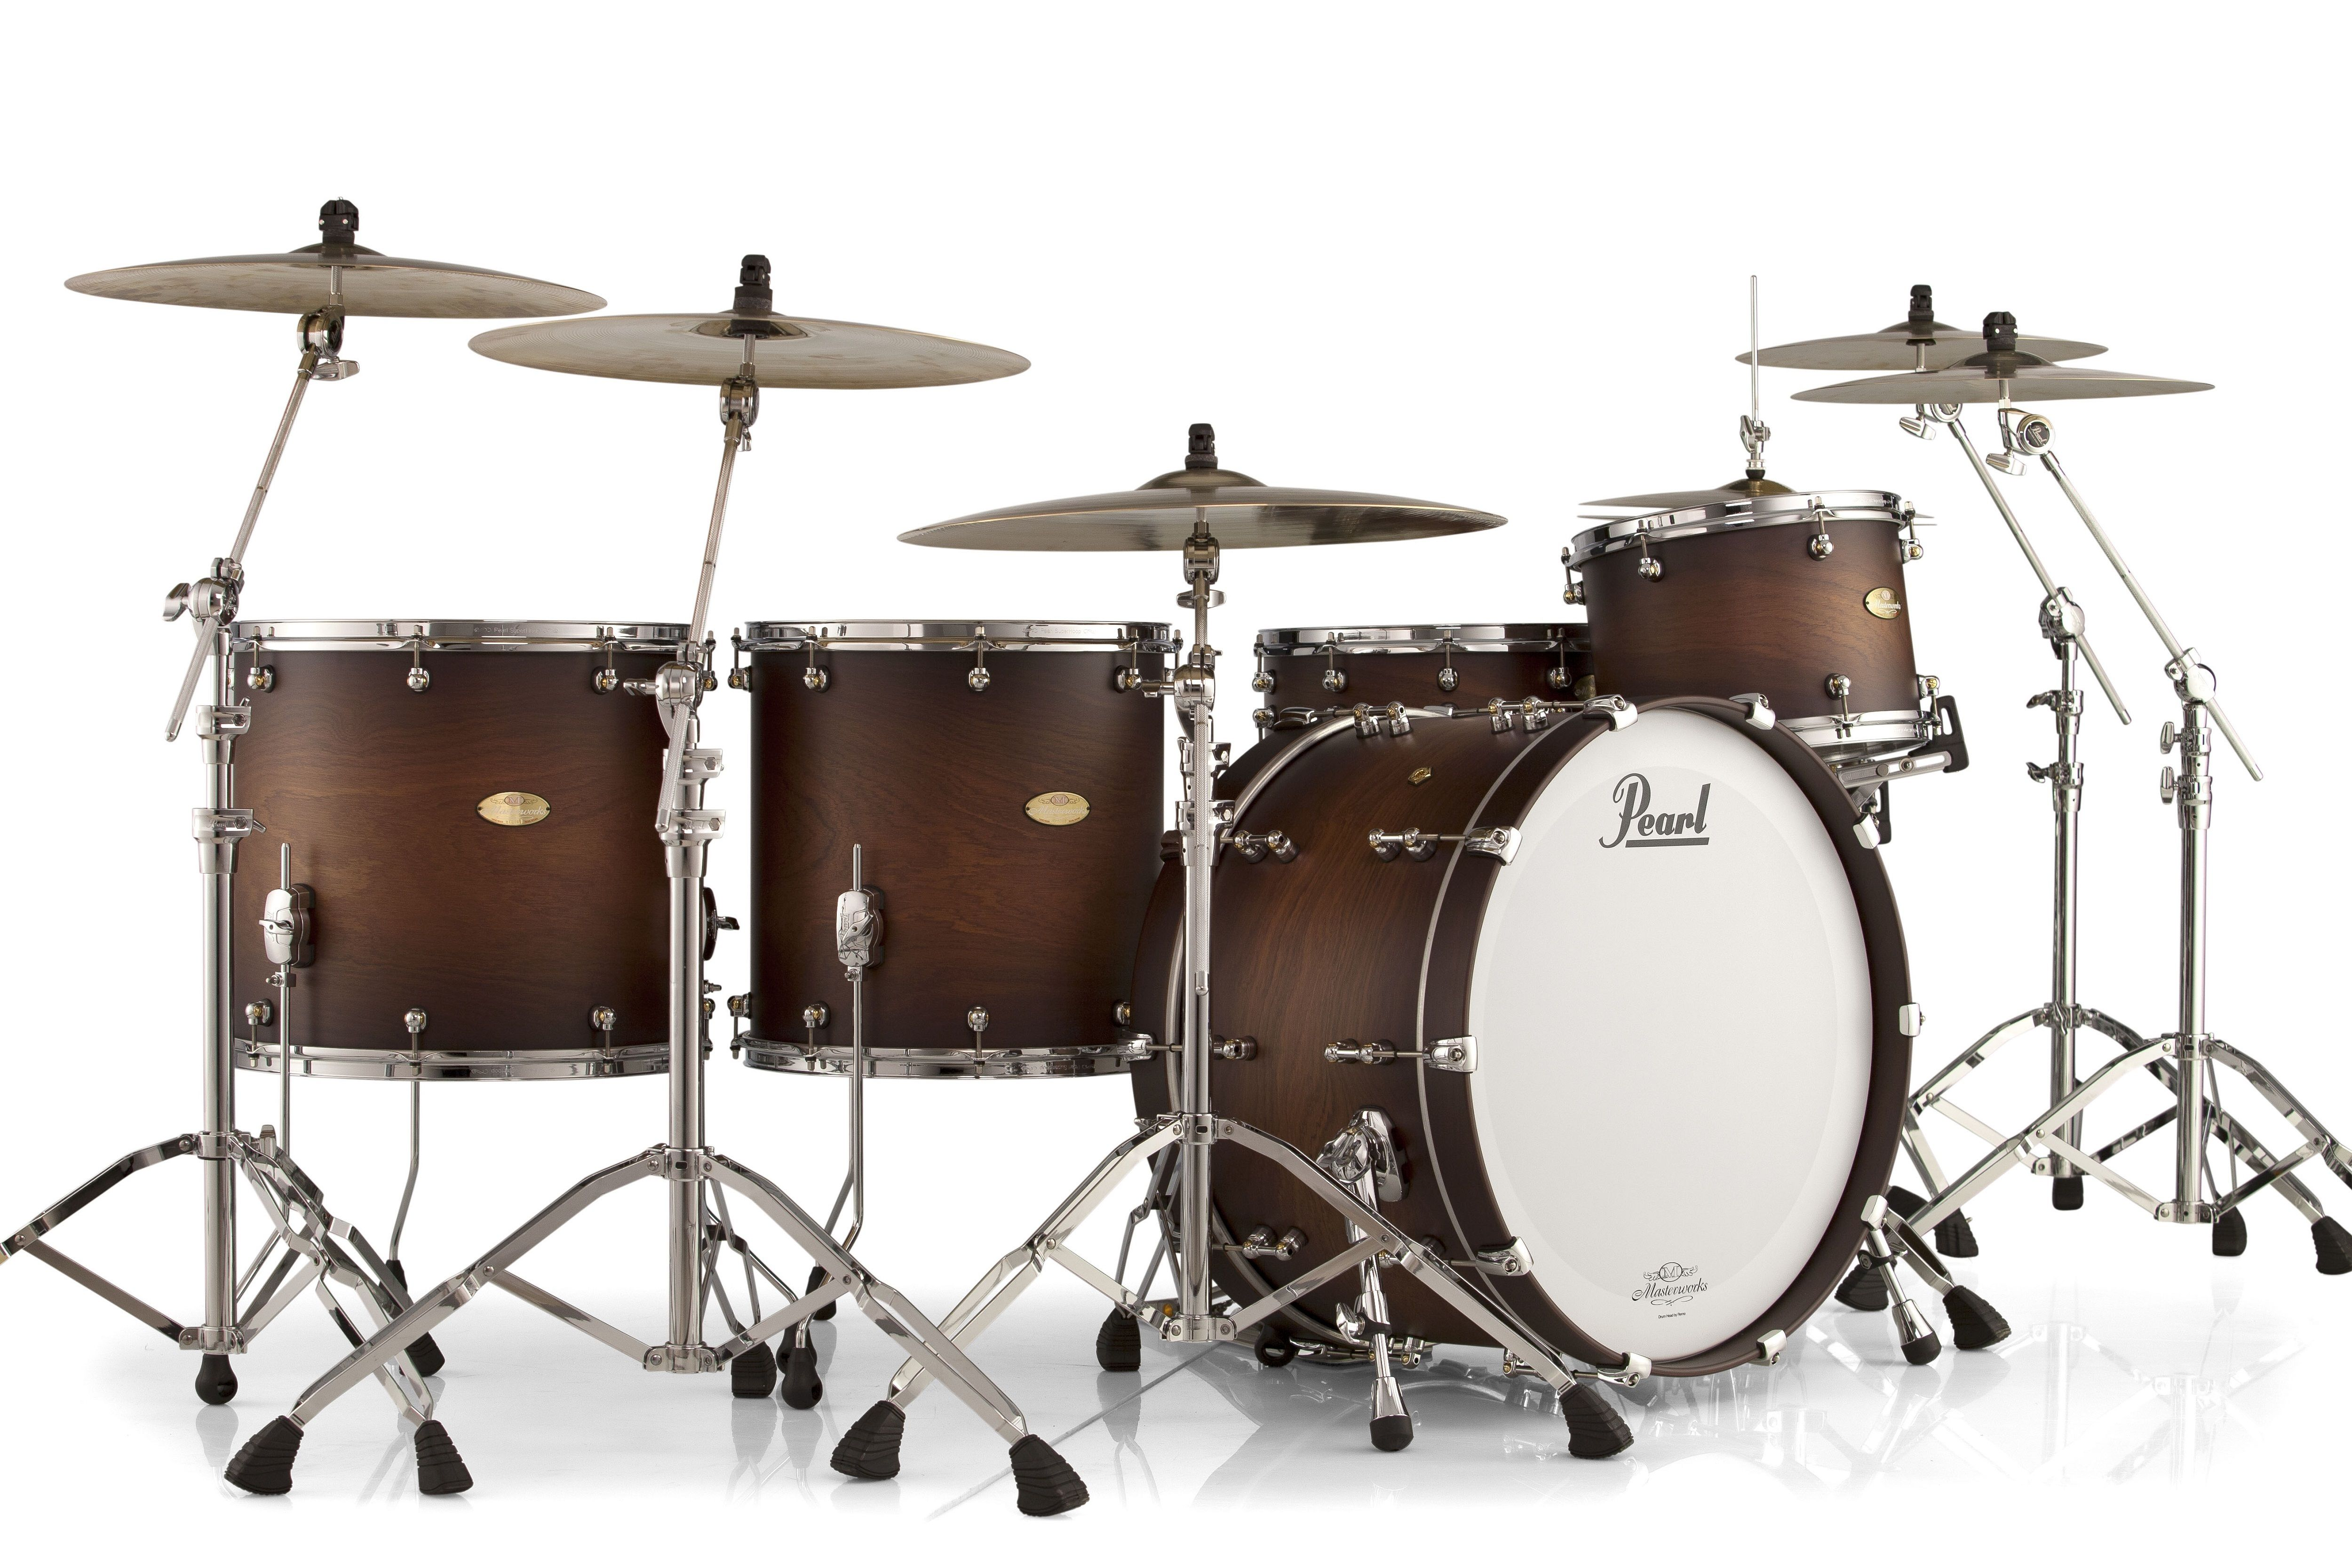 details about pearl masterworks 4pc drum set one up two down 24 18 16 13 satin cocoa burst. Black Bedroom Furniture Sets. Home Design Ideas